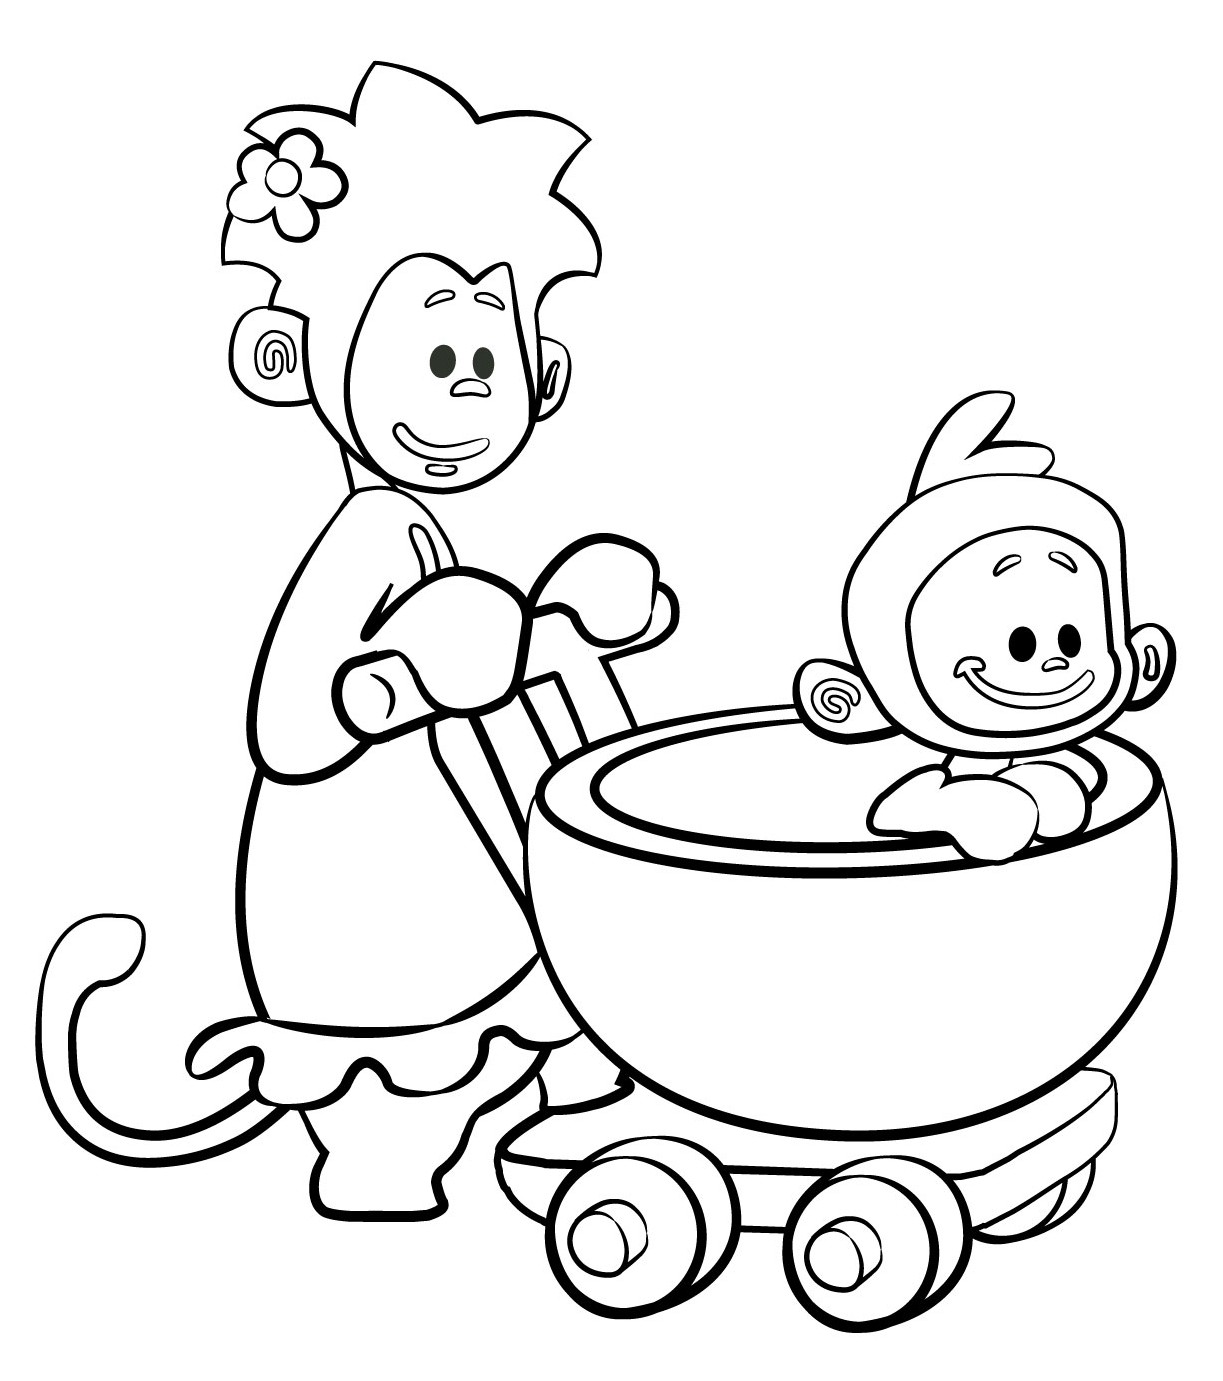 Black and white image for colouring